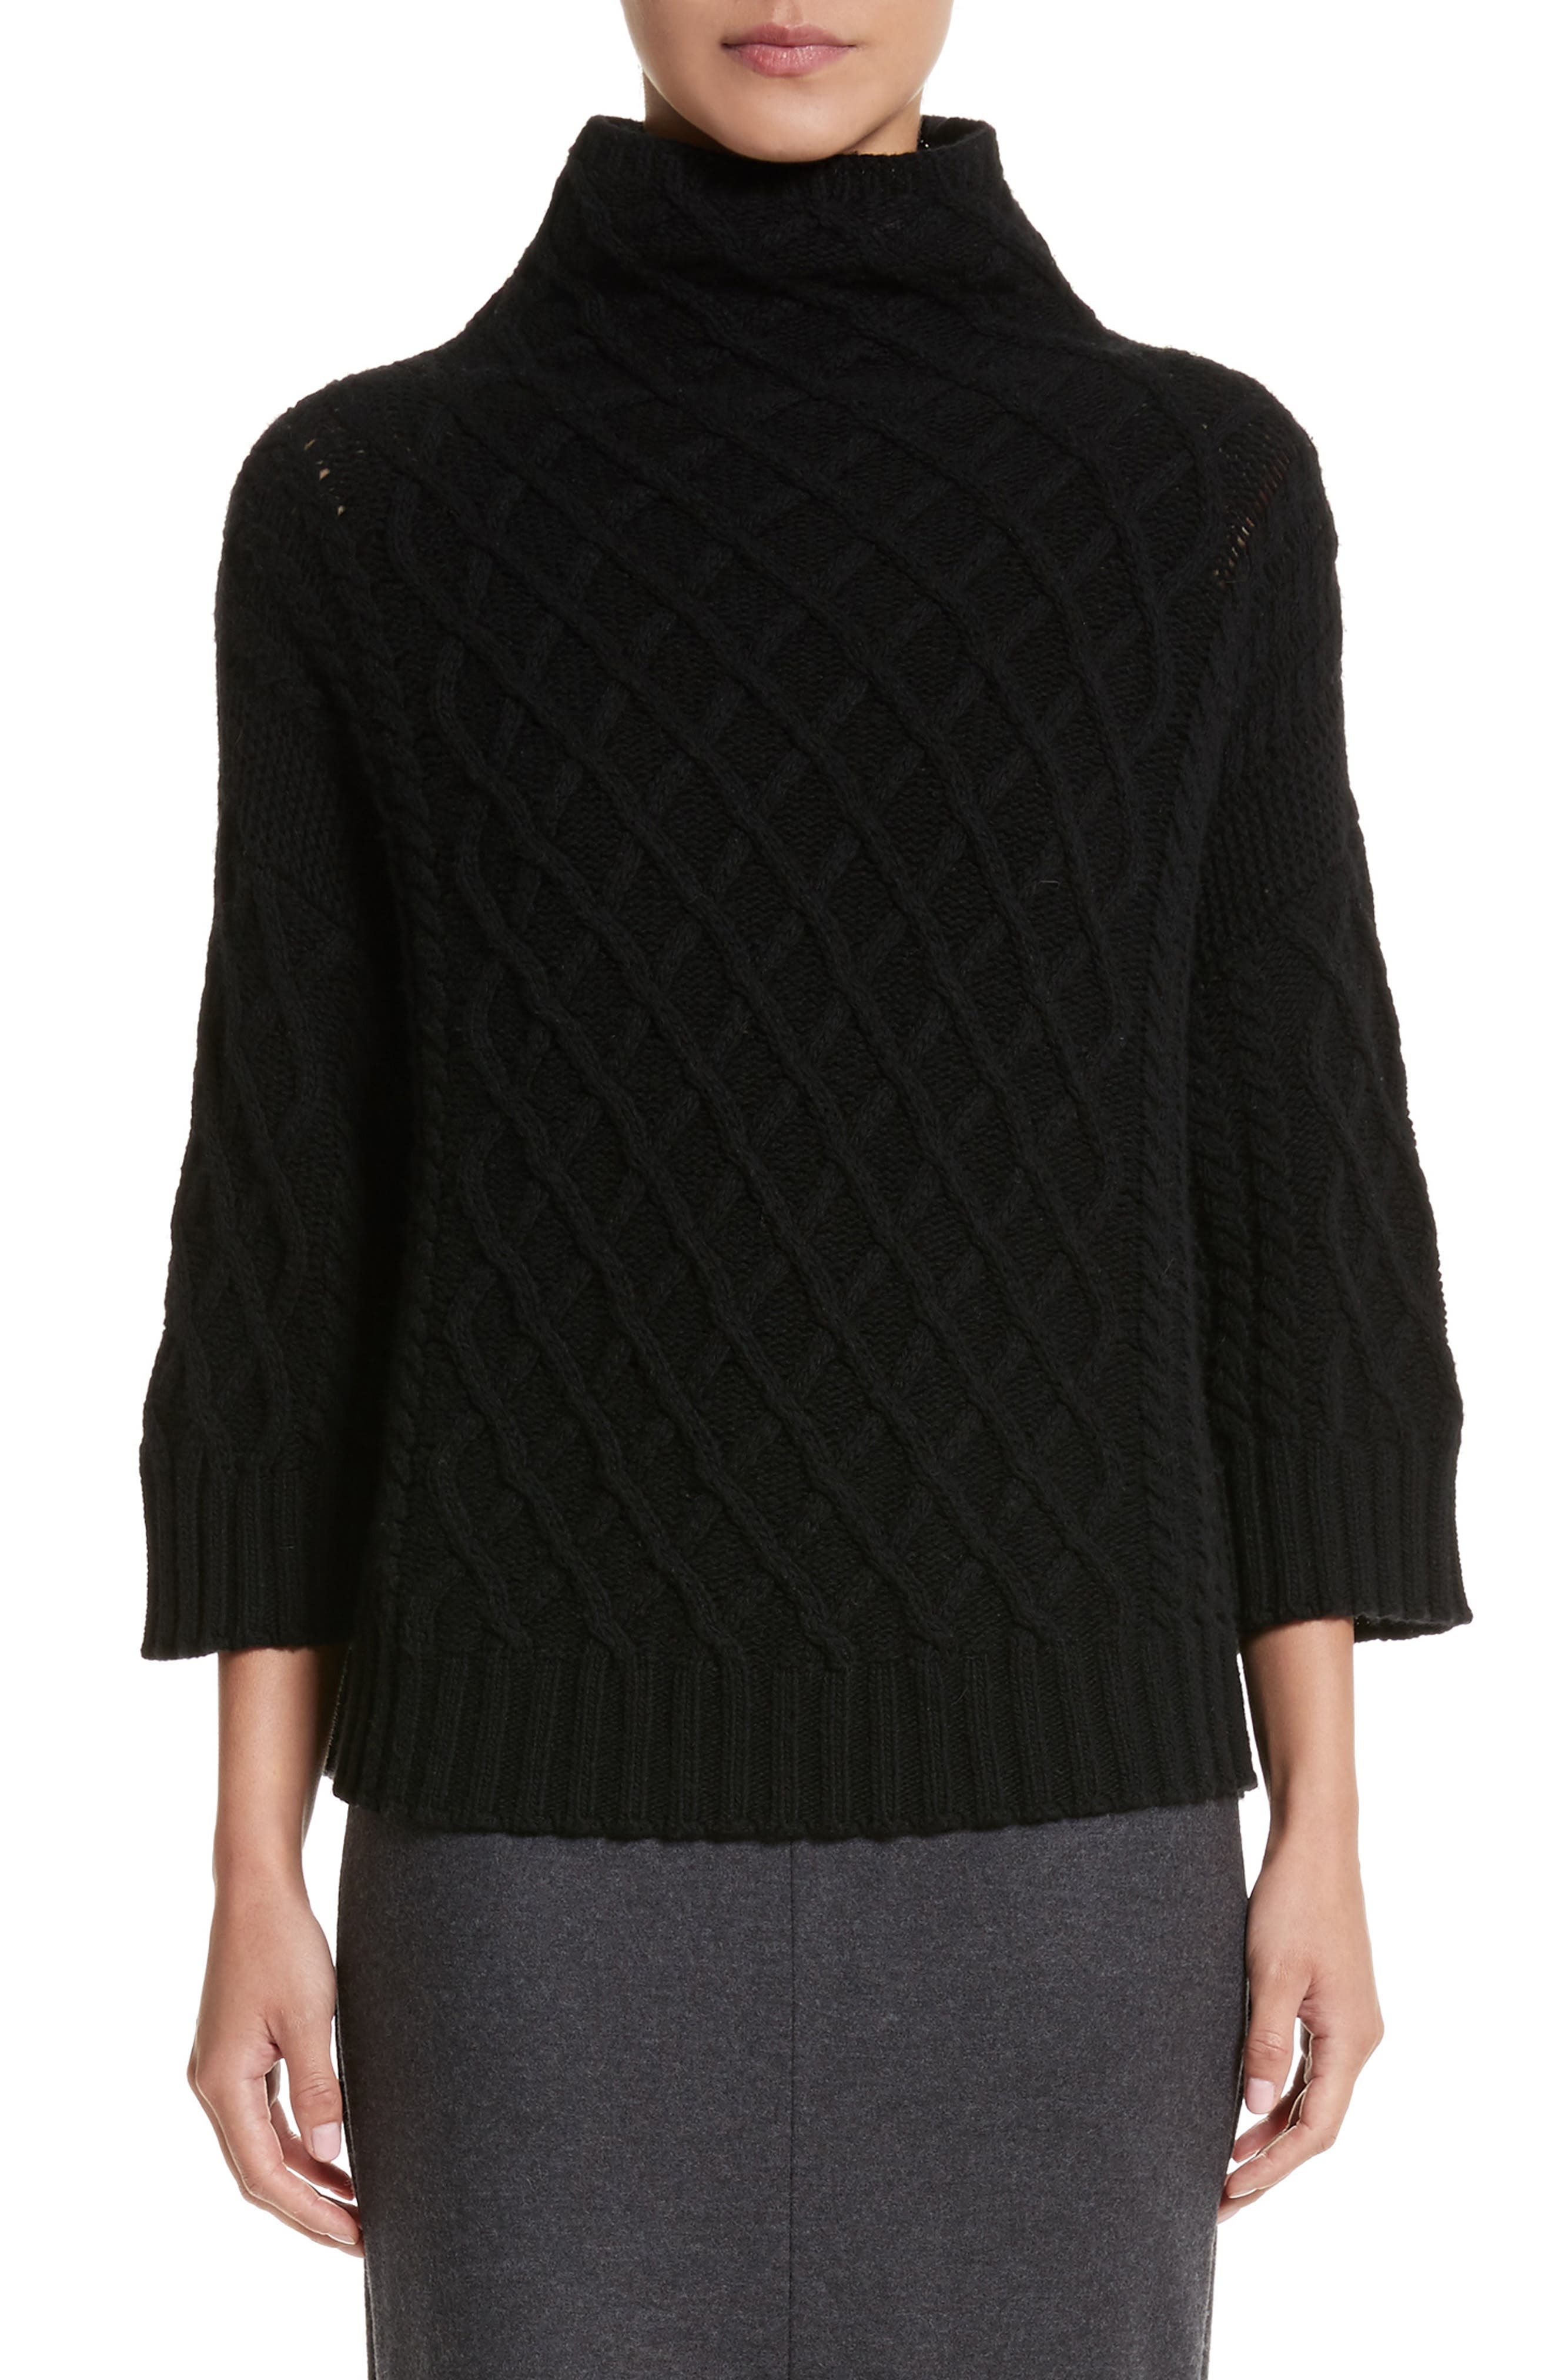 Cantone Wool & Cashmere Funnel Neck Sweater,                             Main thumbnail 1, color,